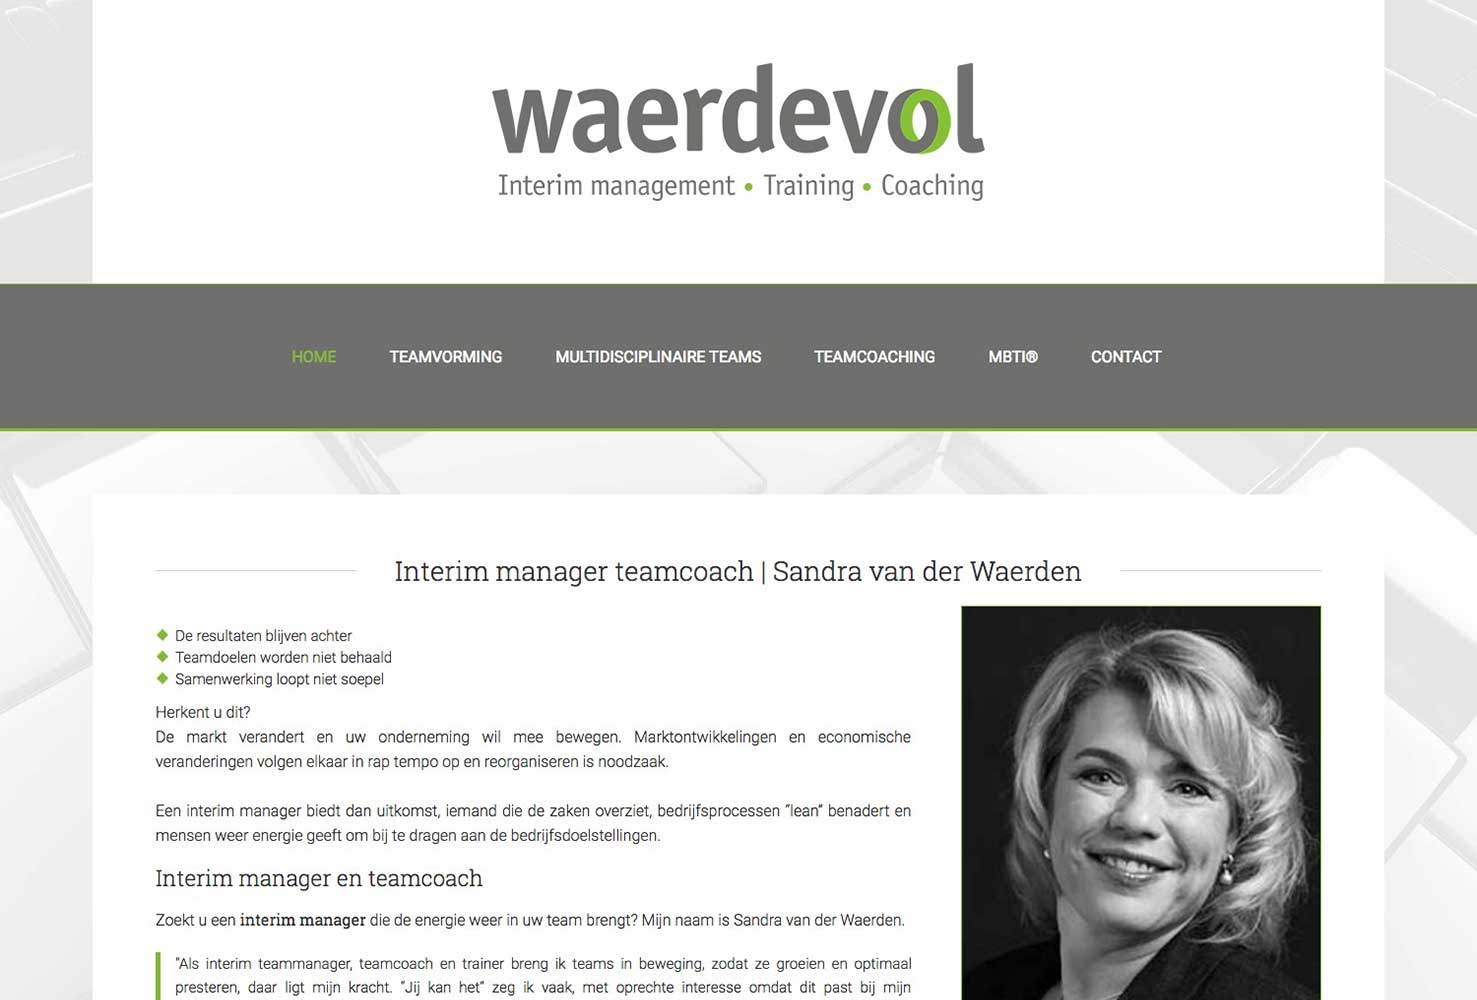 Waerdevol Interim Managemen